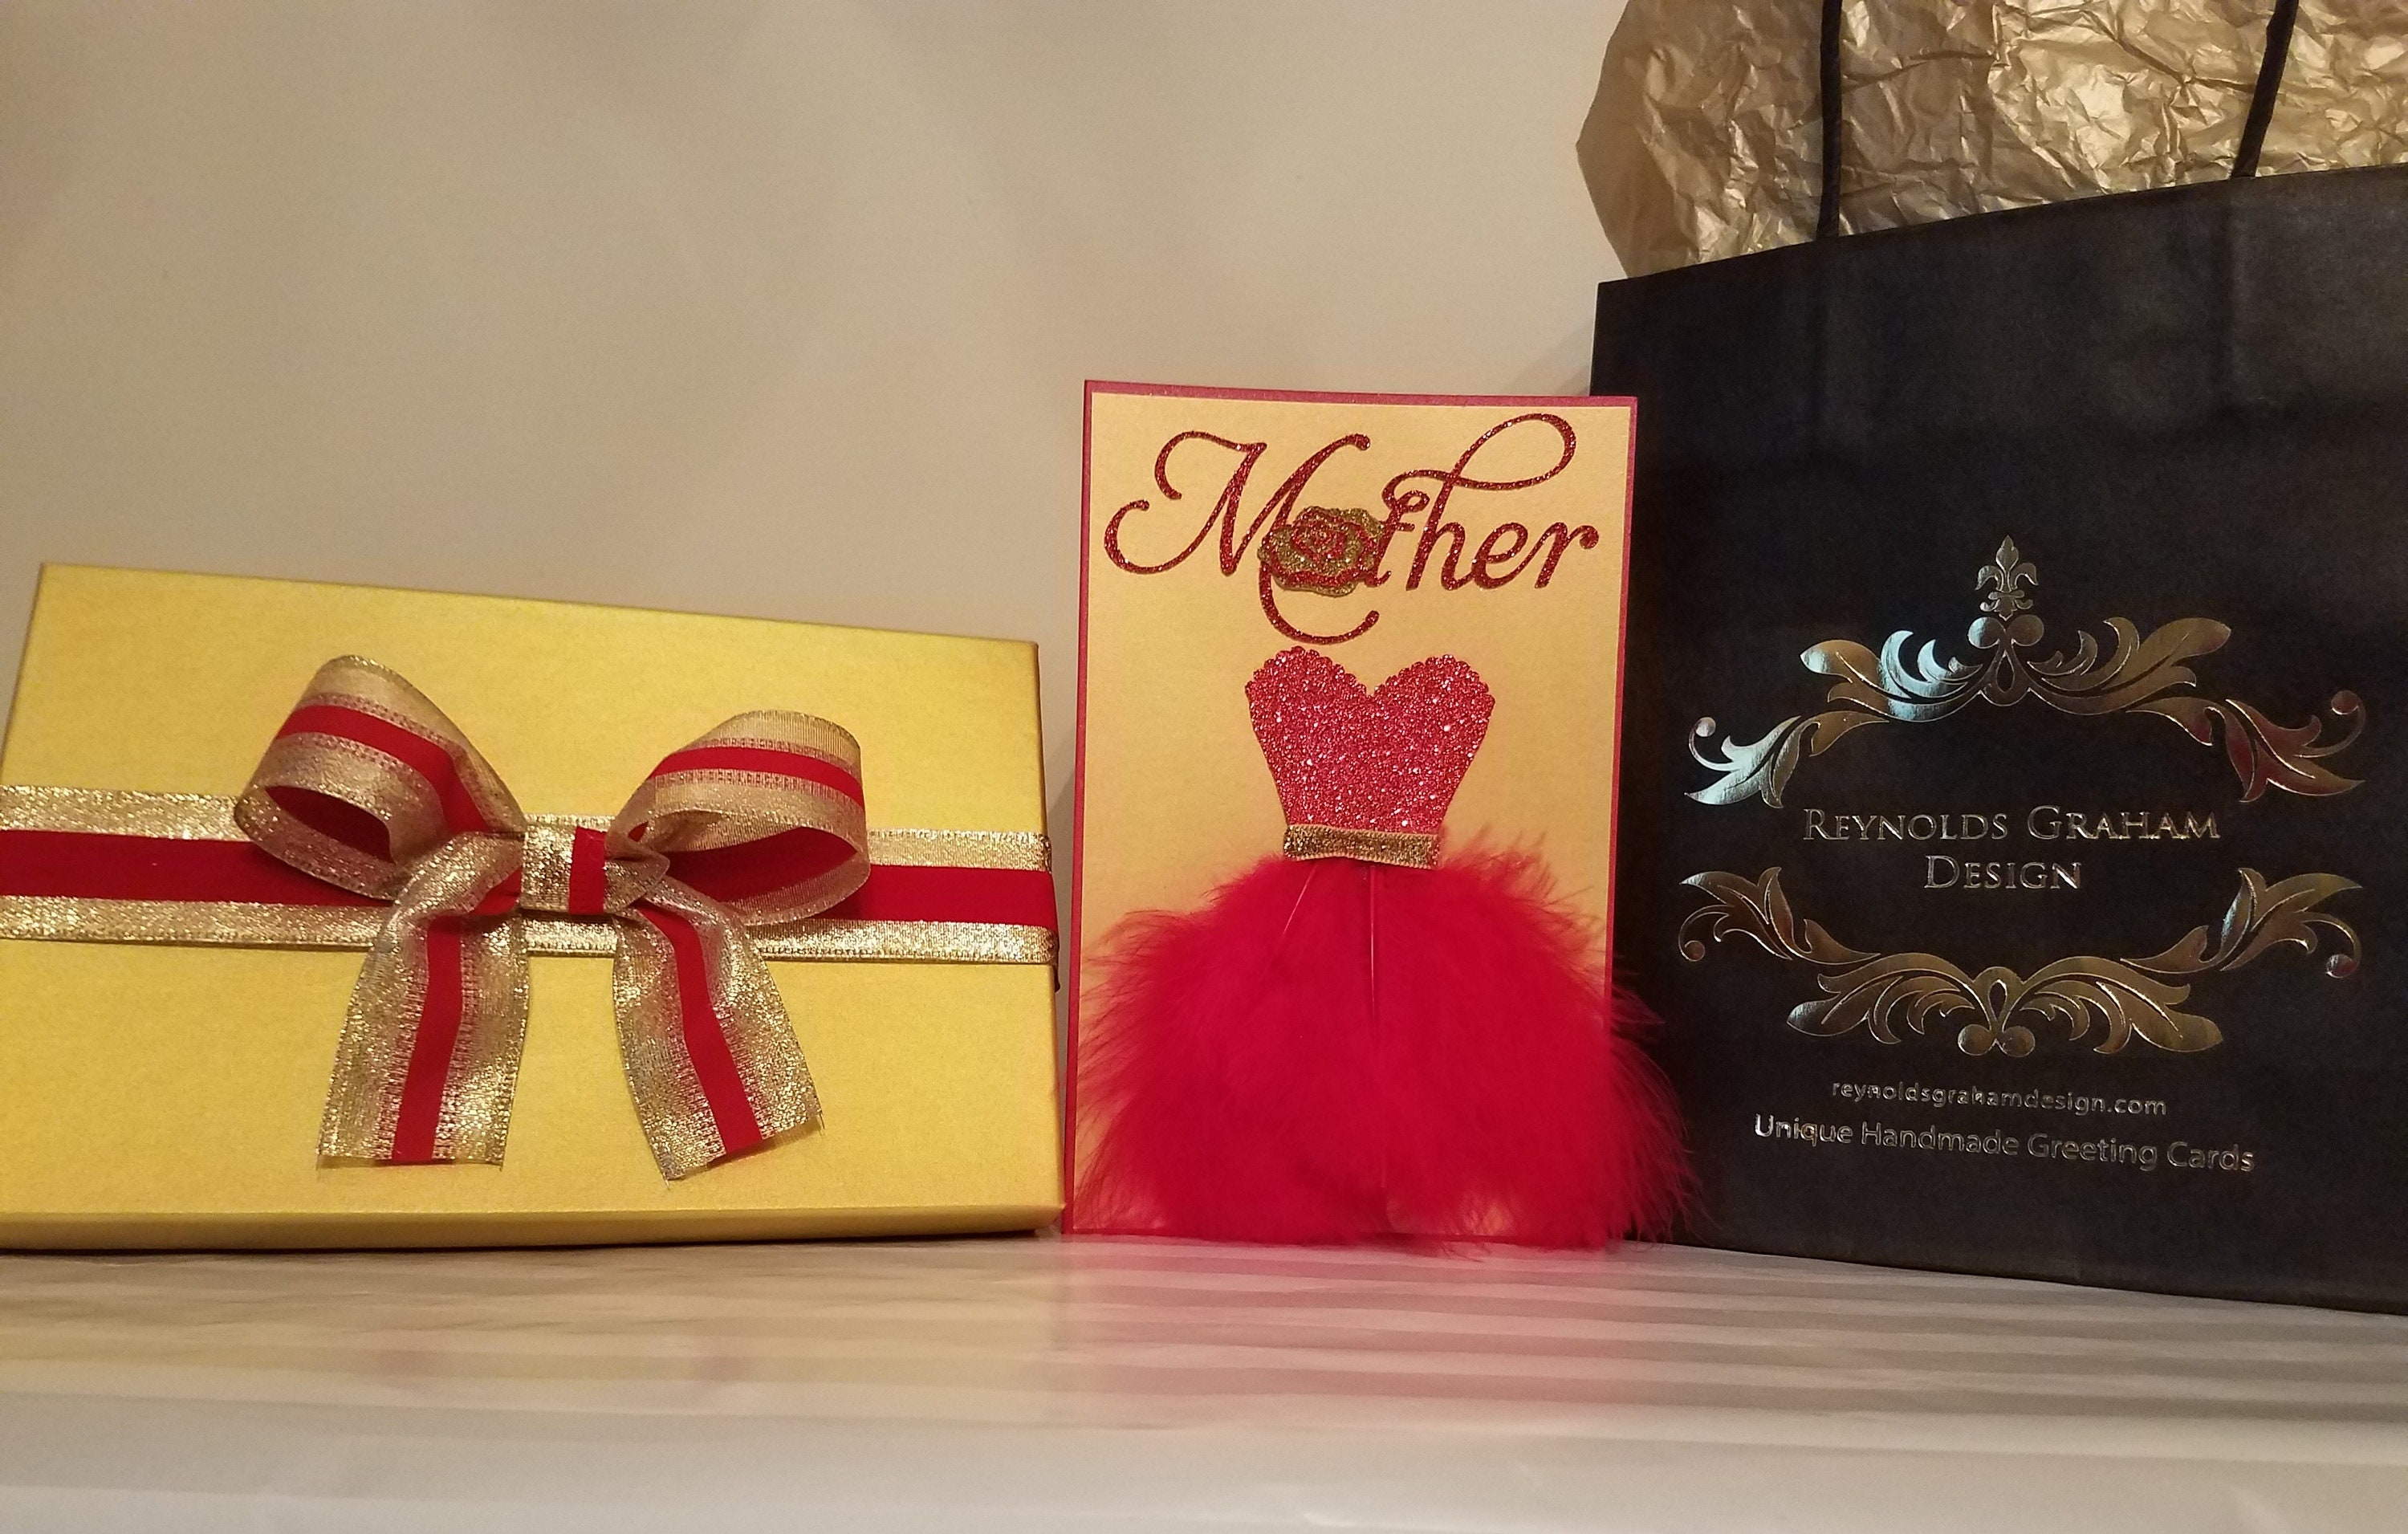 The Brenda Birthday Card Boutique Package